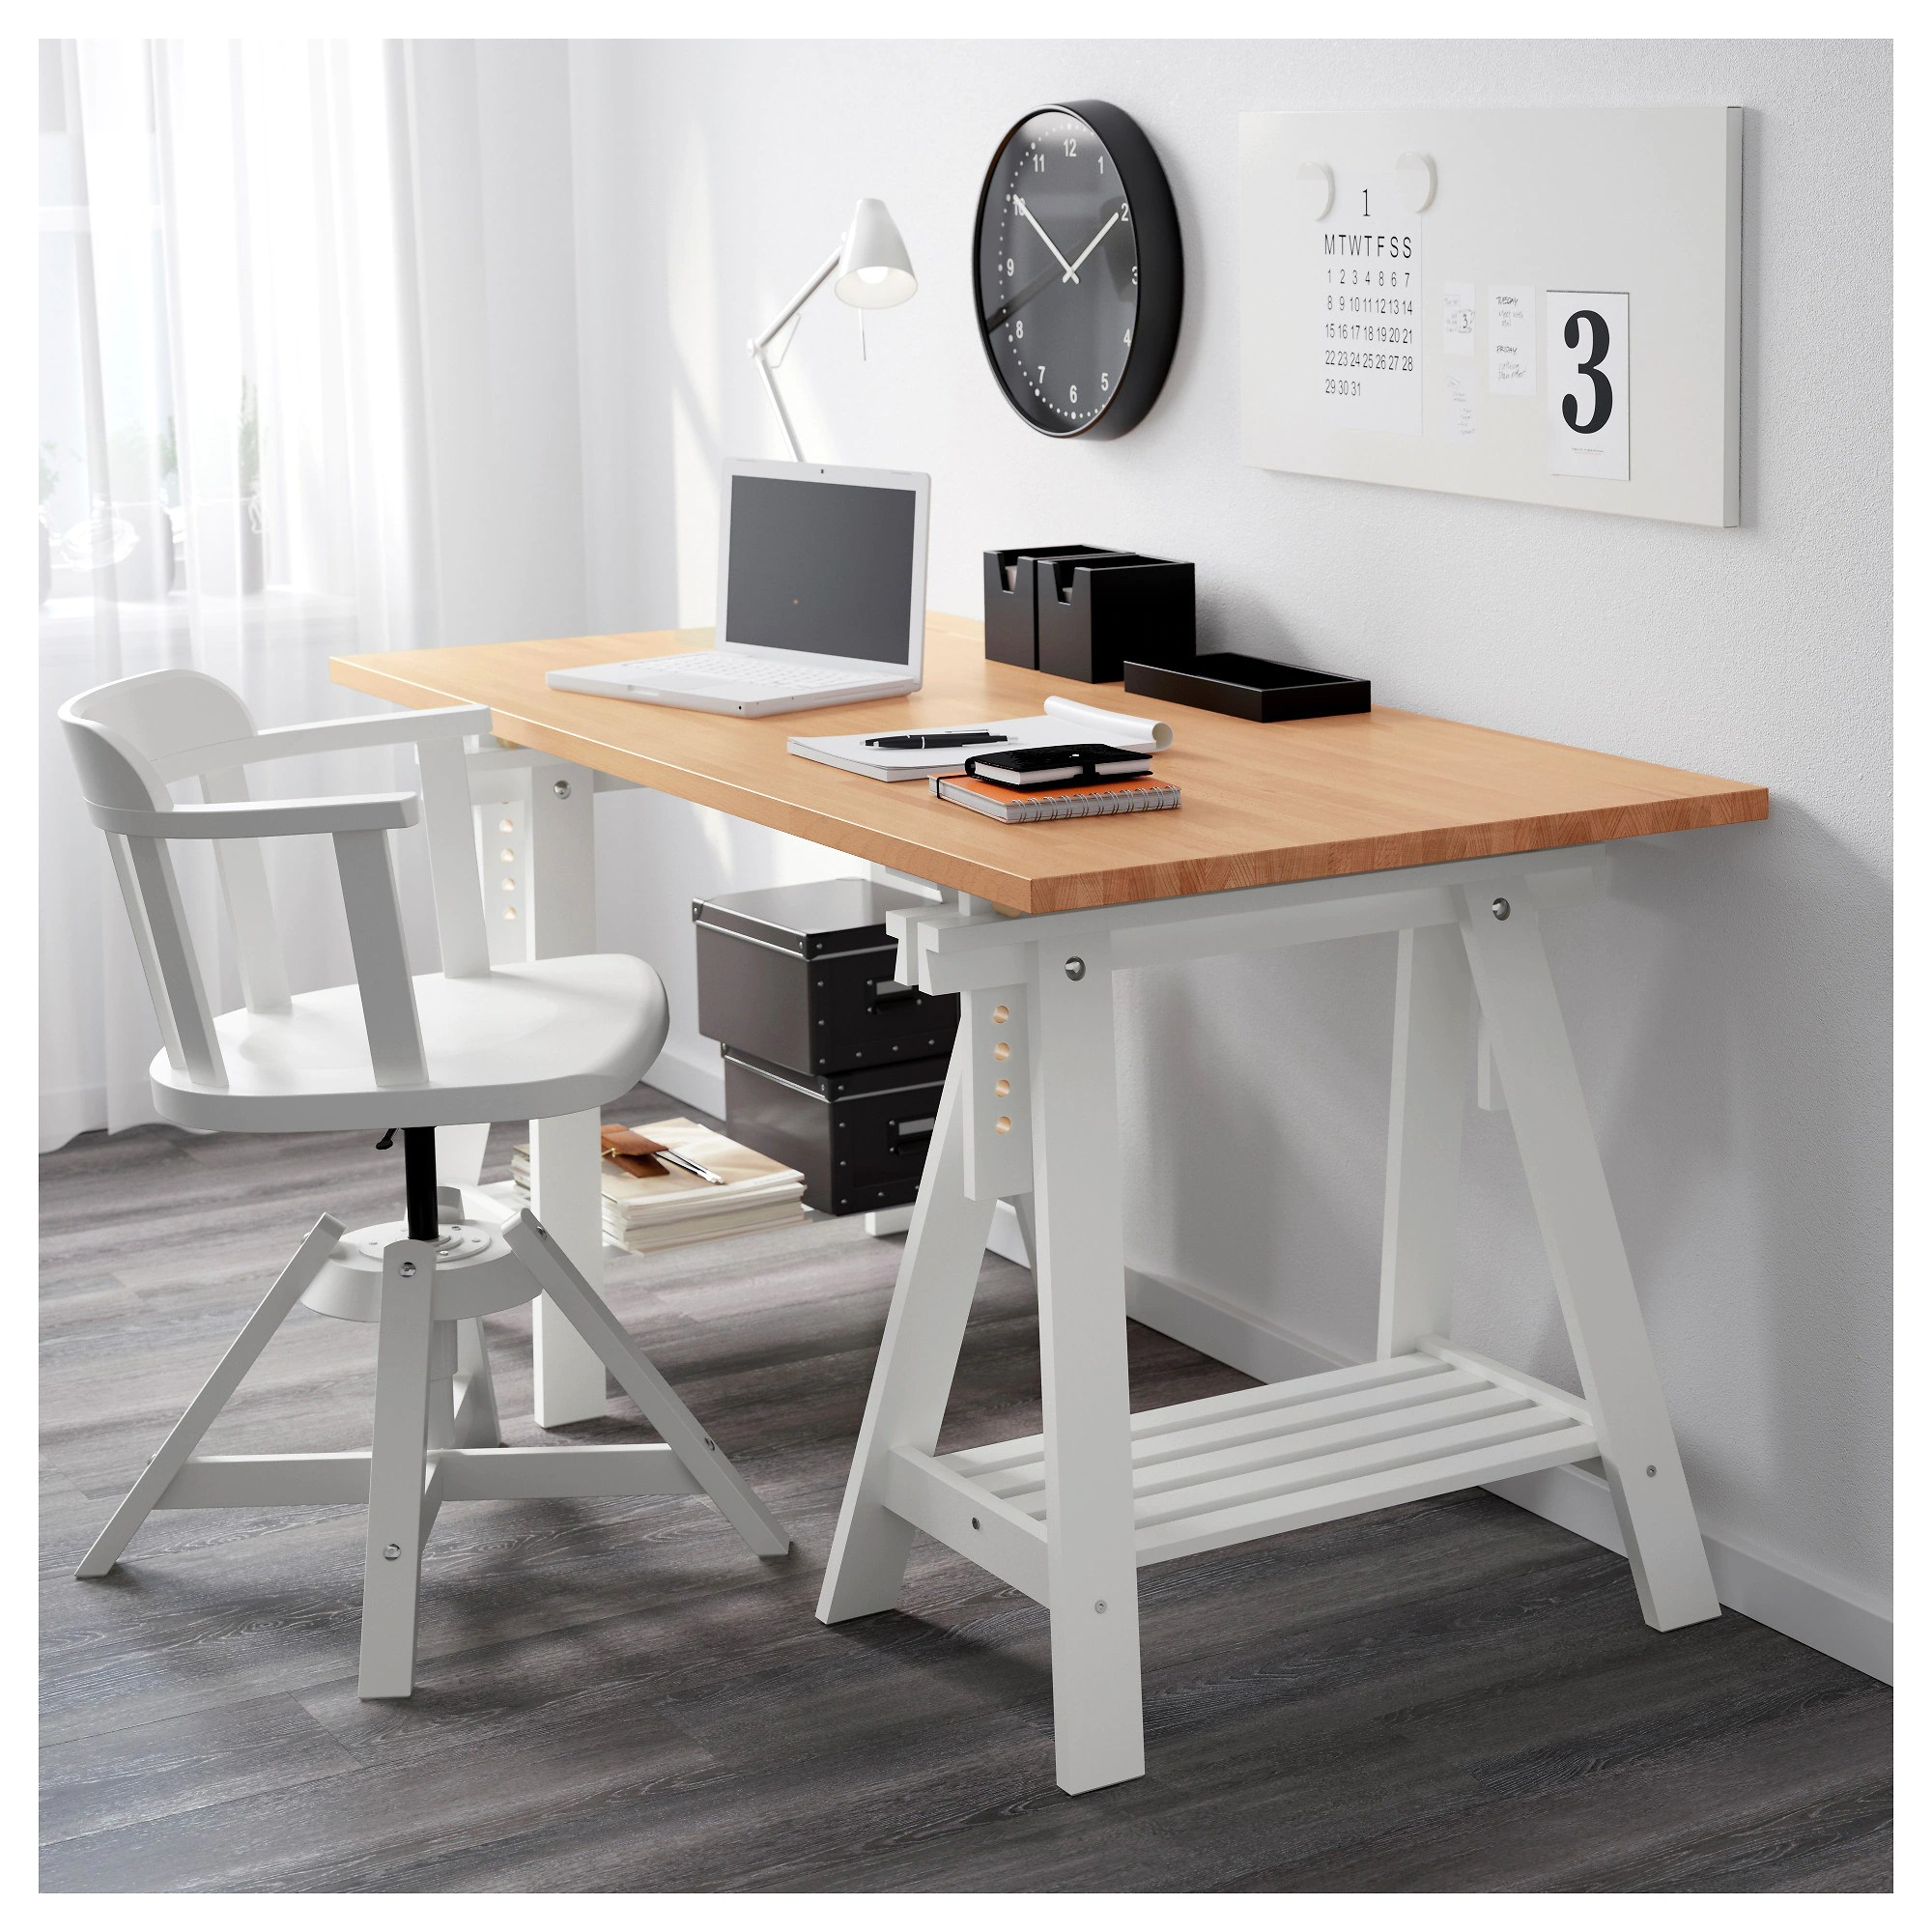 jarvis chair oz design dinette chairs with casters gerton tabletop ikea